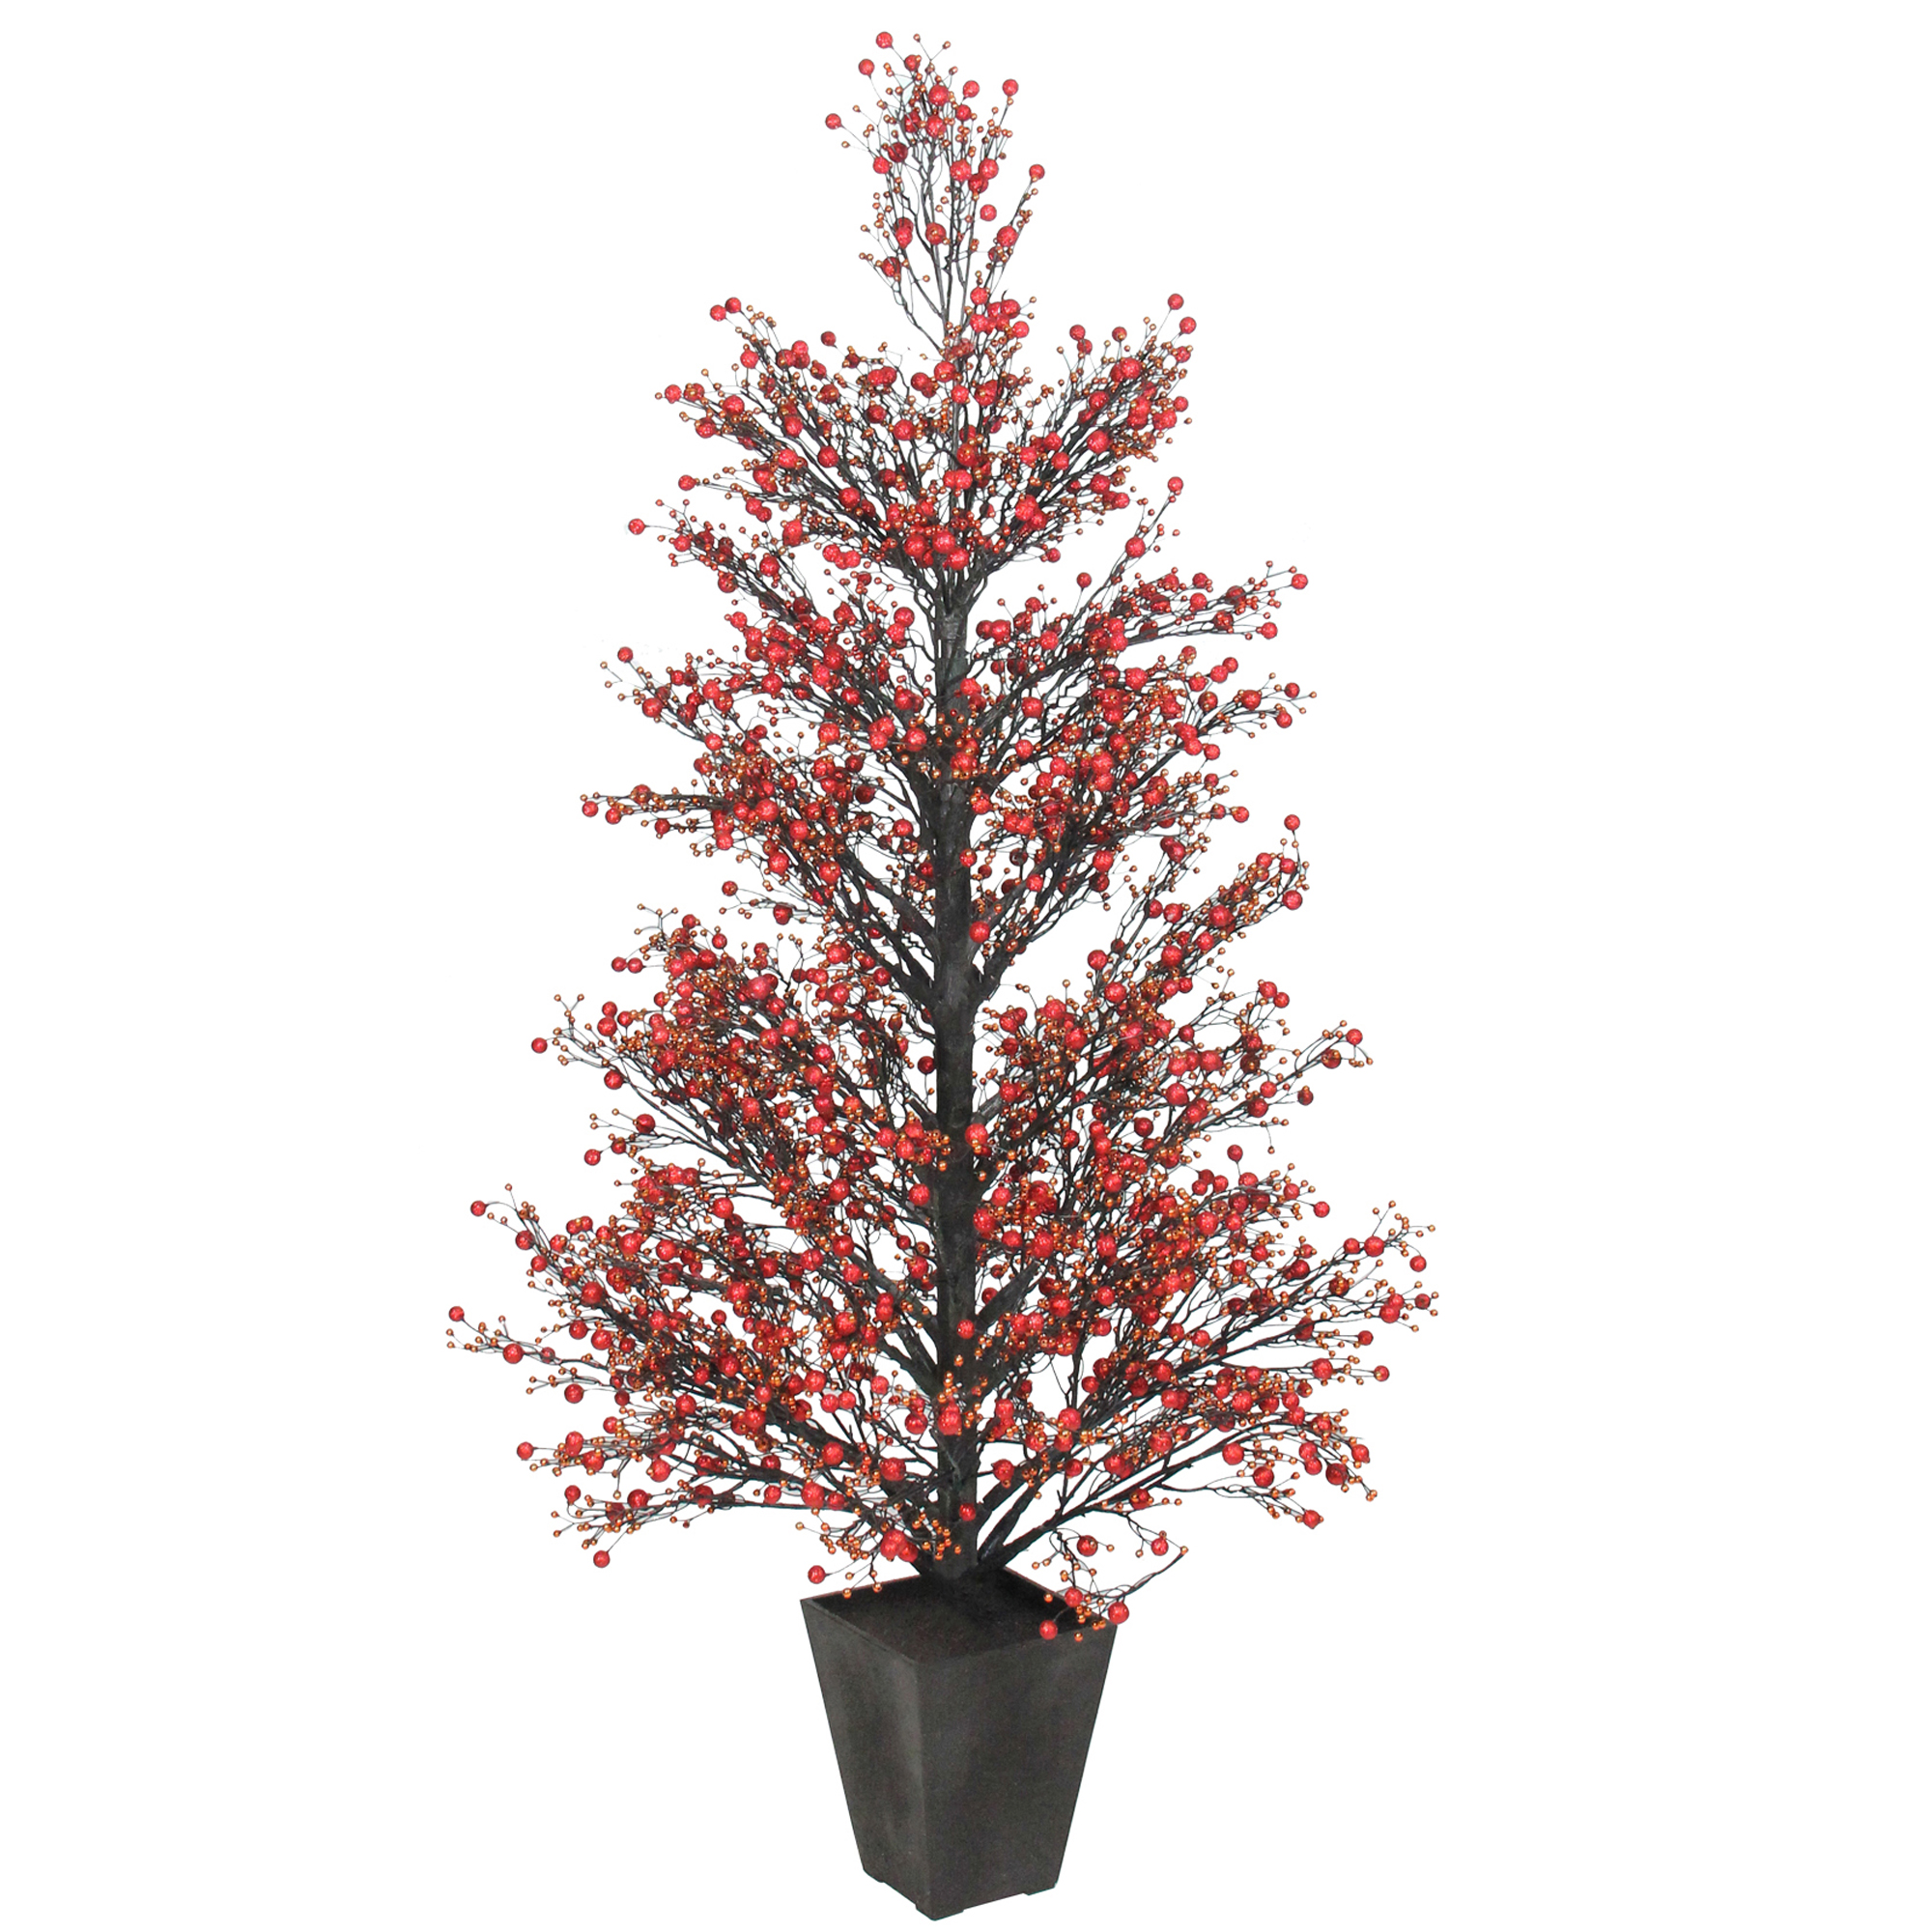 Allstate 4.25' Unlit Artificial Christmas Tree Black Potted Red Berry